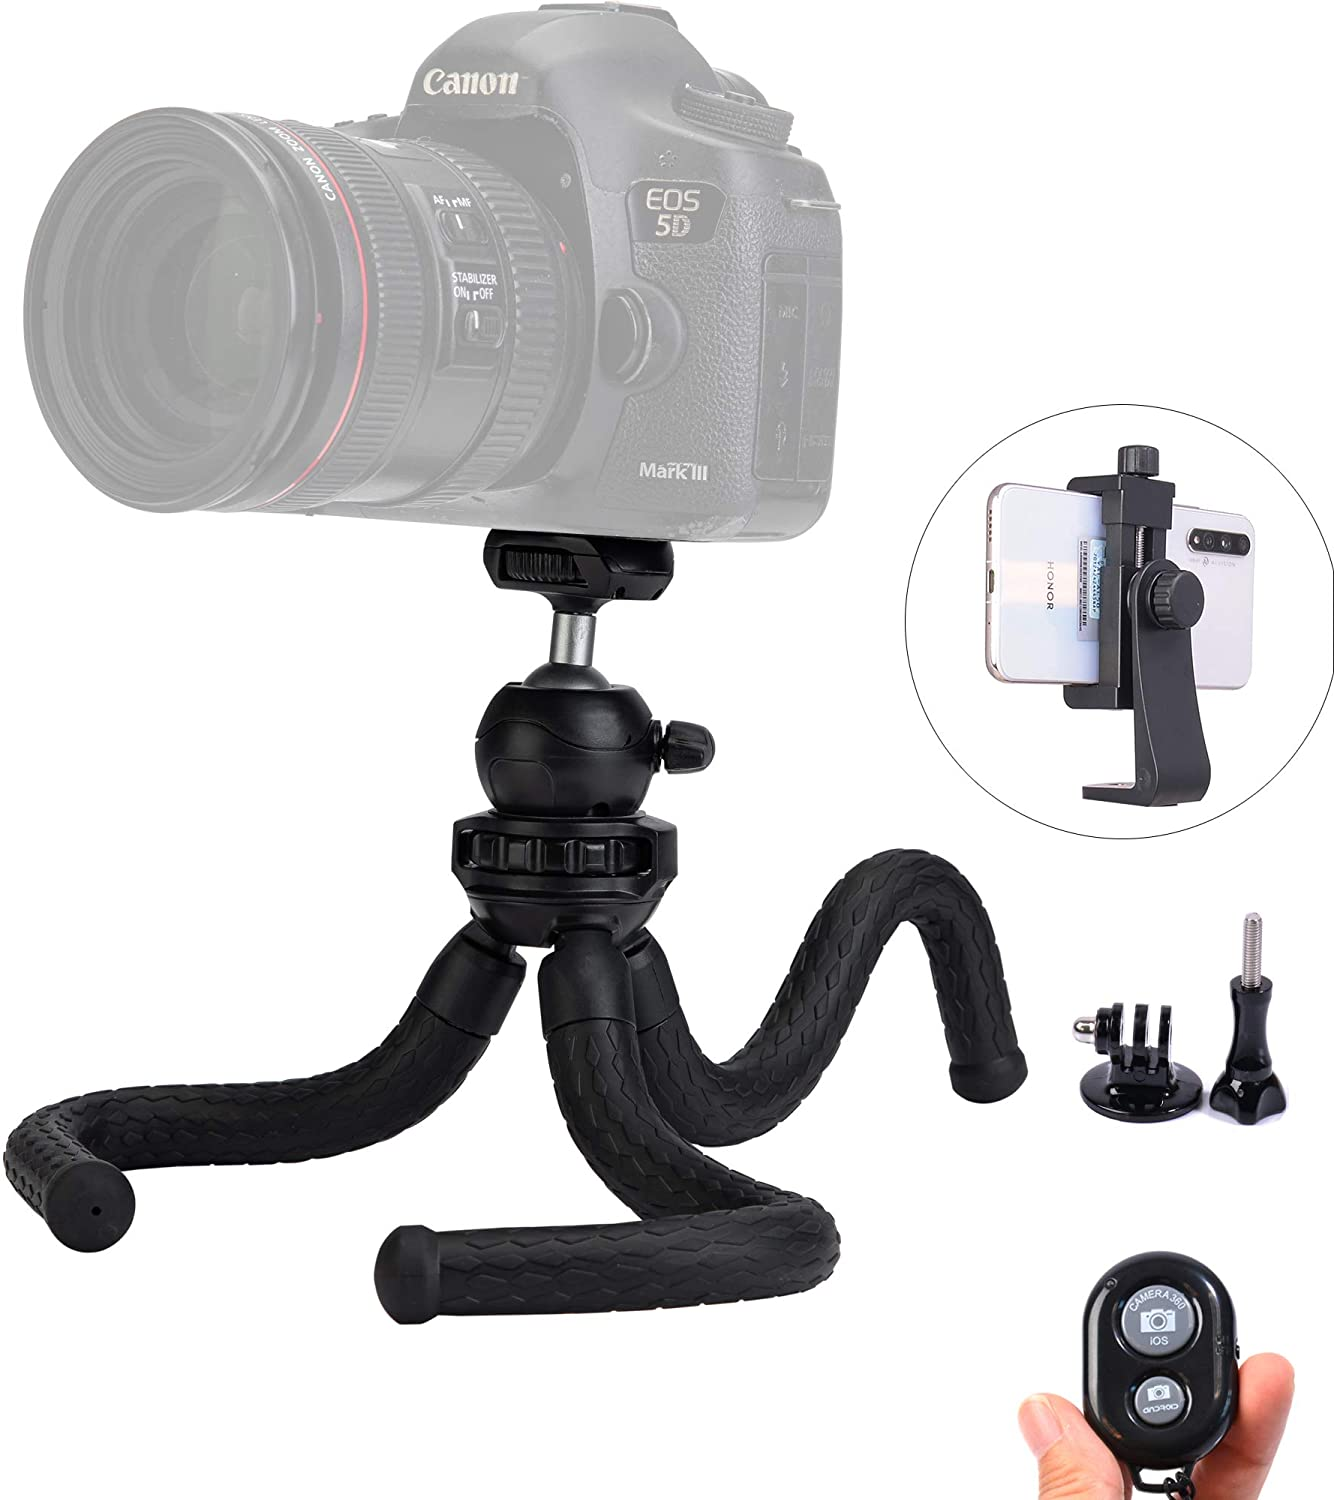 Ruittos Phone Tripod, Cell Phone Flexible Tripod Octopus with Bluetooth Camera Remote, Mobile Tripod Mount Adapter, Compatible with iPhone 11 Xs Samsung Andriod Live Streaming Vlog (Flexible Tripod)